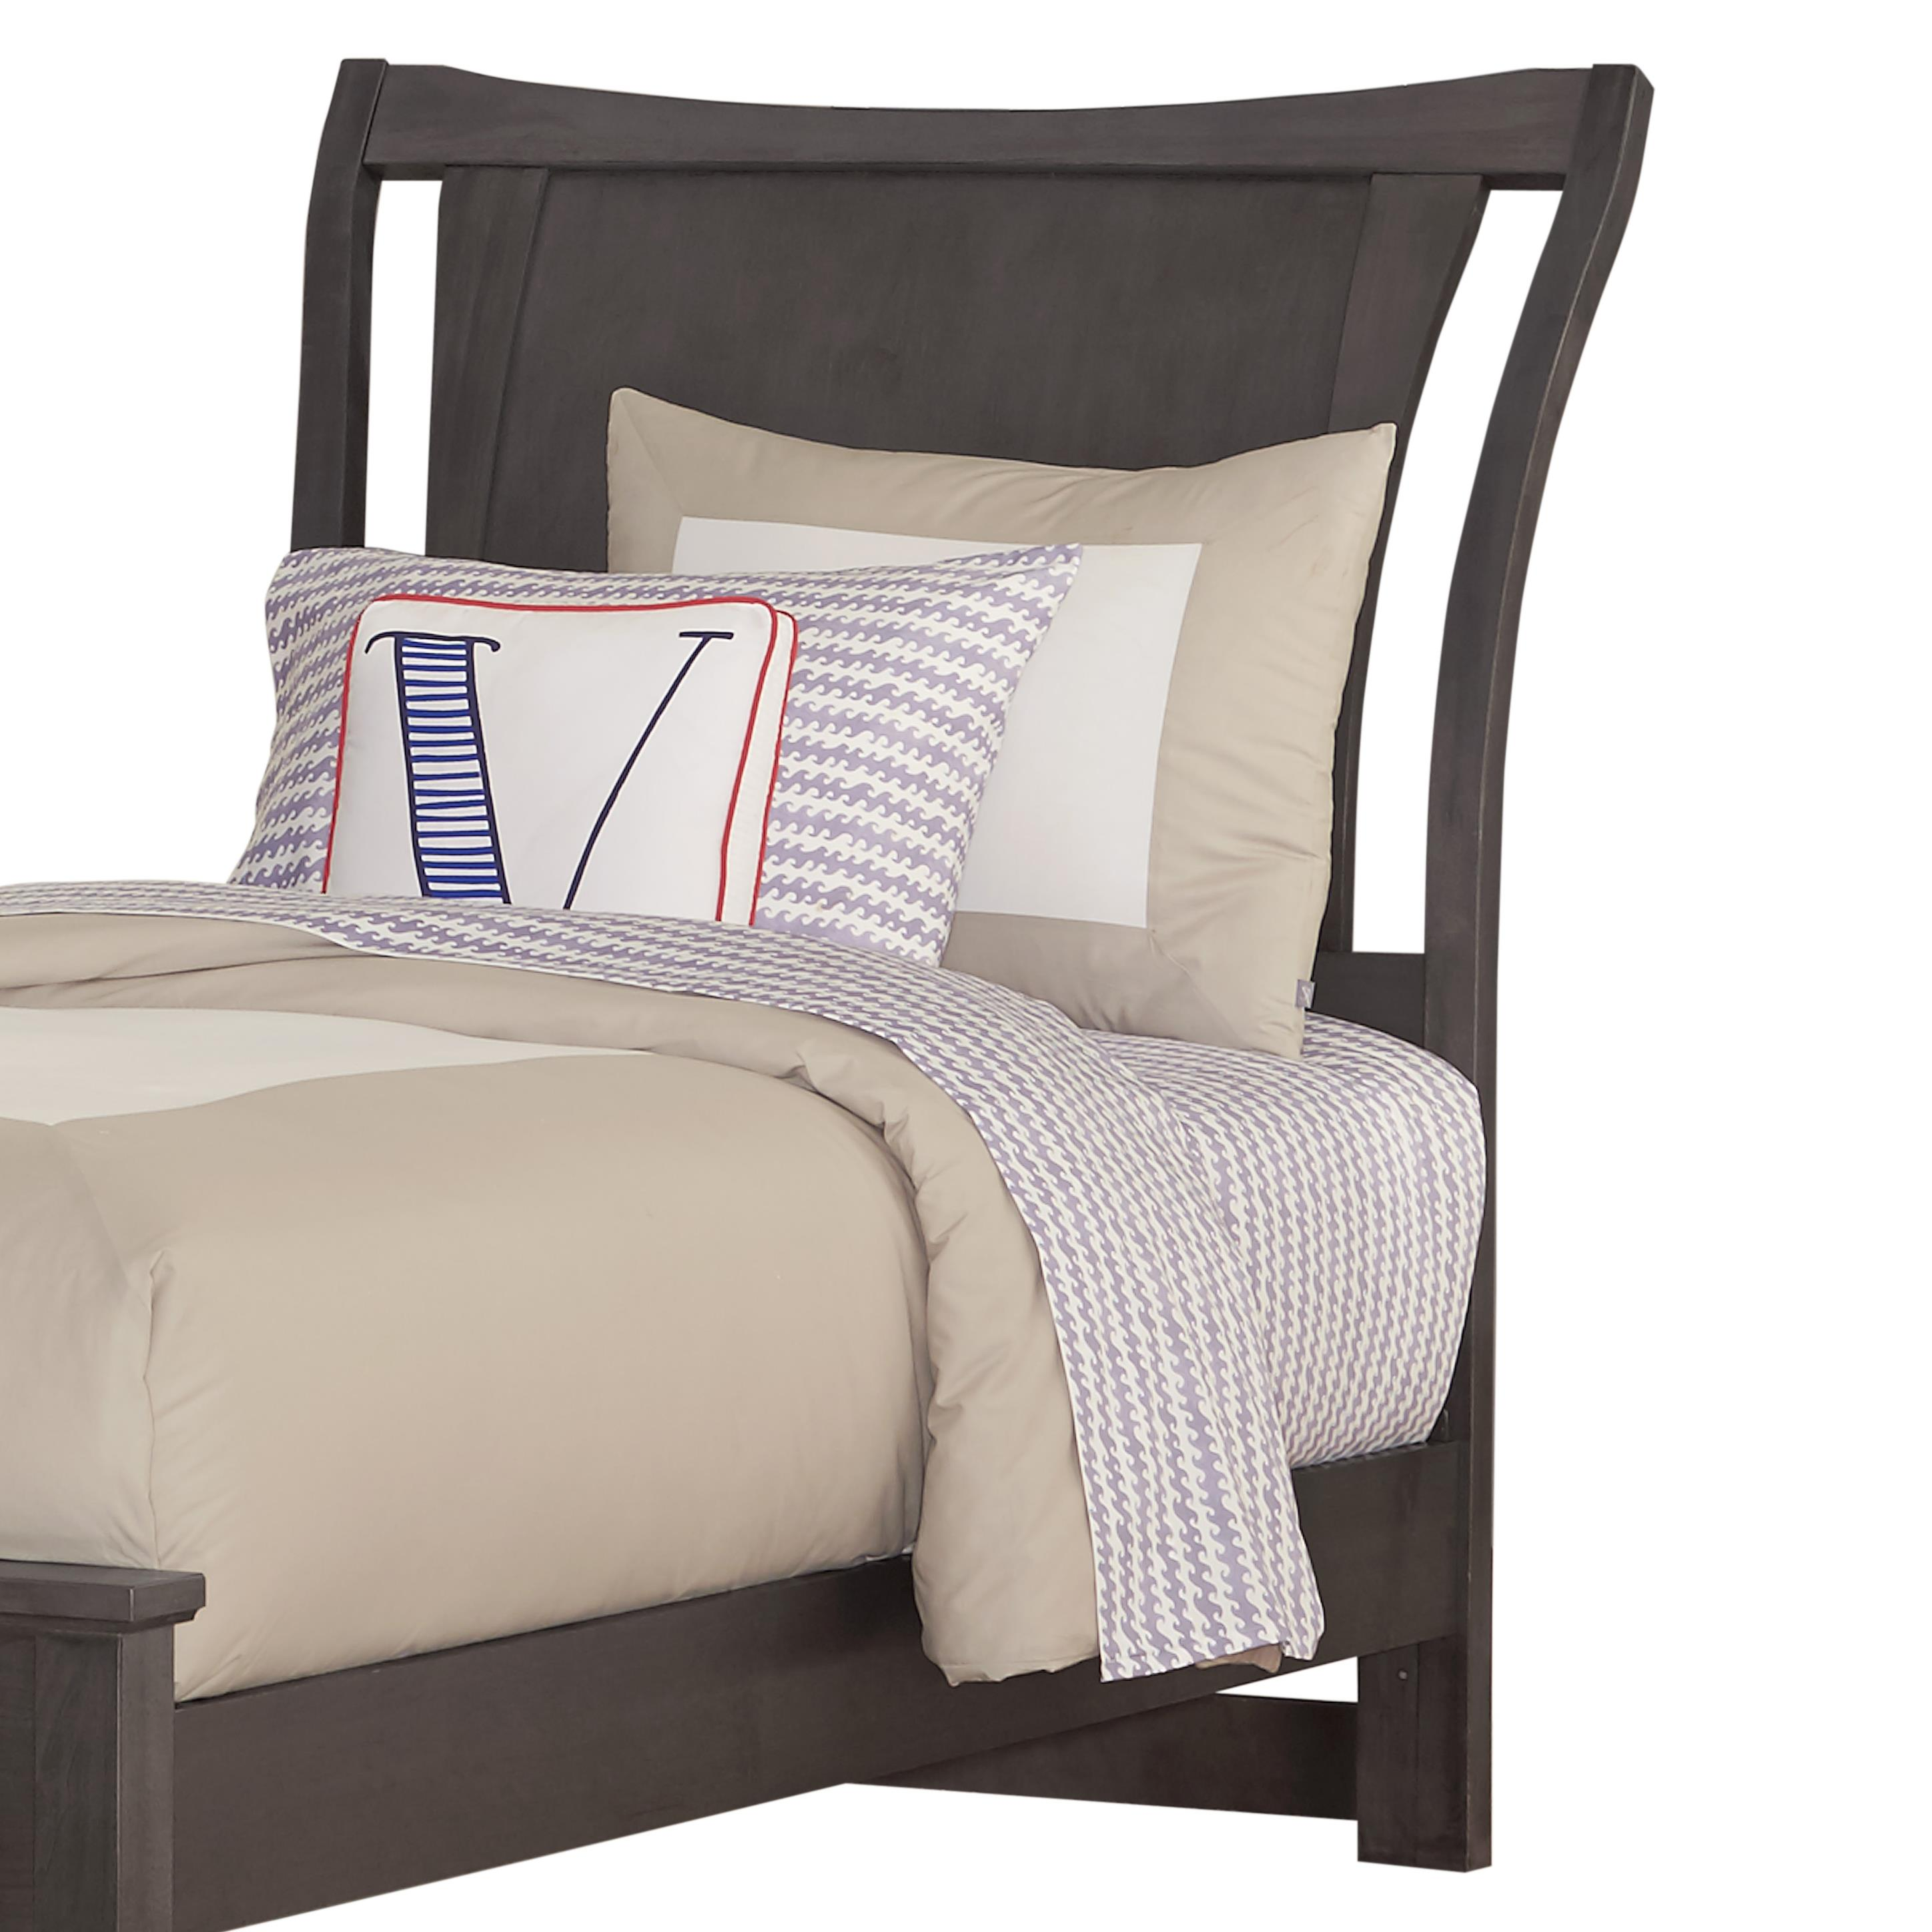 Vaughan Bassett Commentary Twin Wing Headboard - Item Number: 394-331